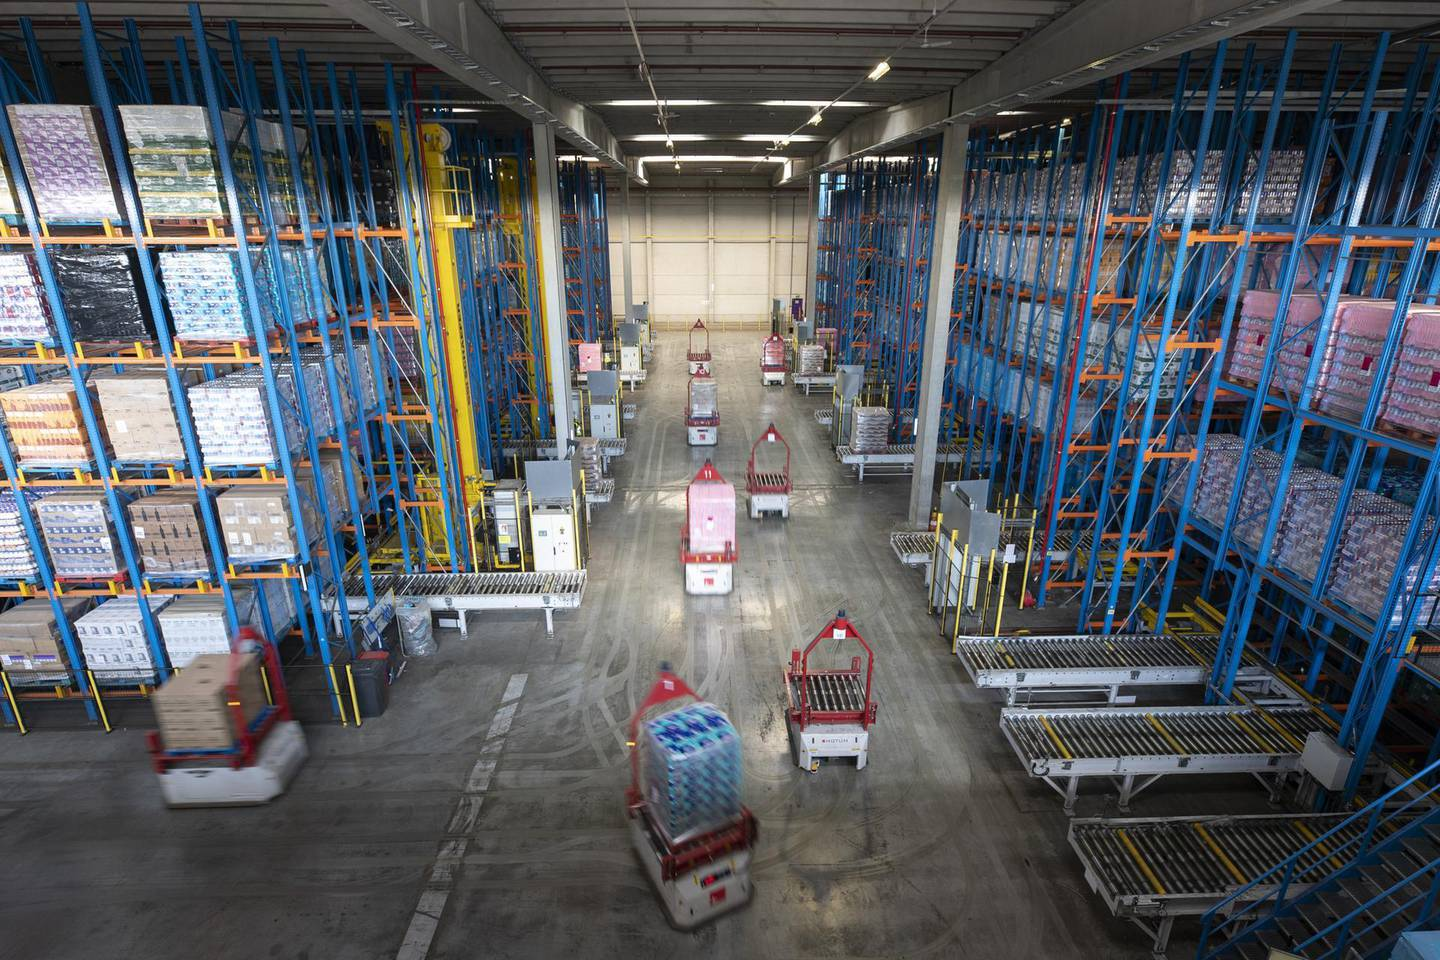 Automated trucks transport crates of retail goods for export to the U.K. inside the ECS European Containers NV computerized warehouse in Zeebrugge, Belgium, on Monday, May 7, 2018. With Brexit due in 10 months, Zeebrugge embodies the repeated warnings by the U.K.'s EU partners that its departure from the bloc is a lose-lose move by adding bureaucracy for businesses and costs for consumers. Photographer: Jasper Juinen/Bloomberg